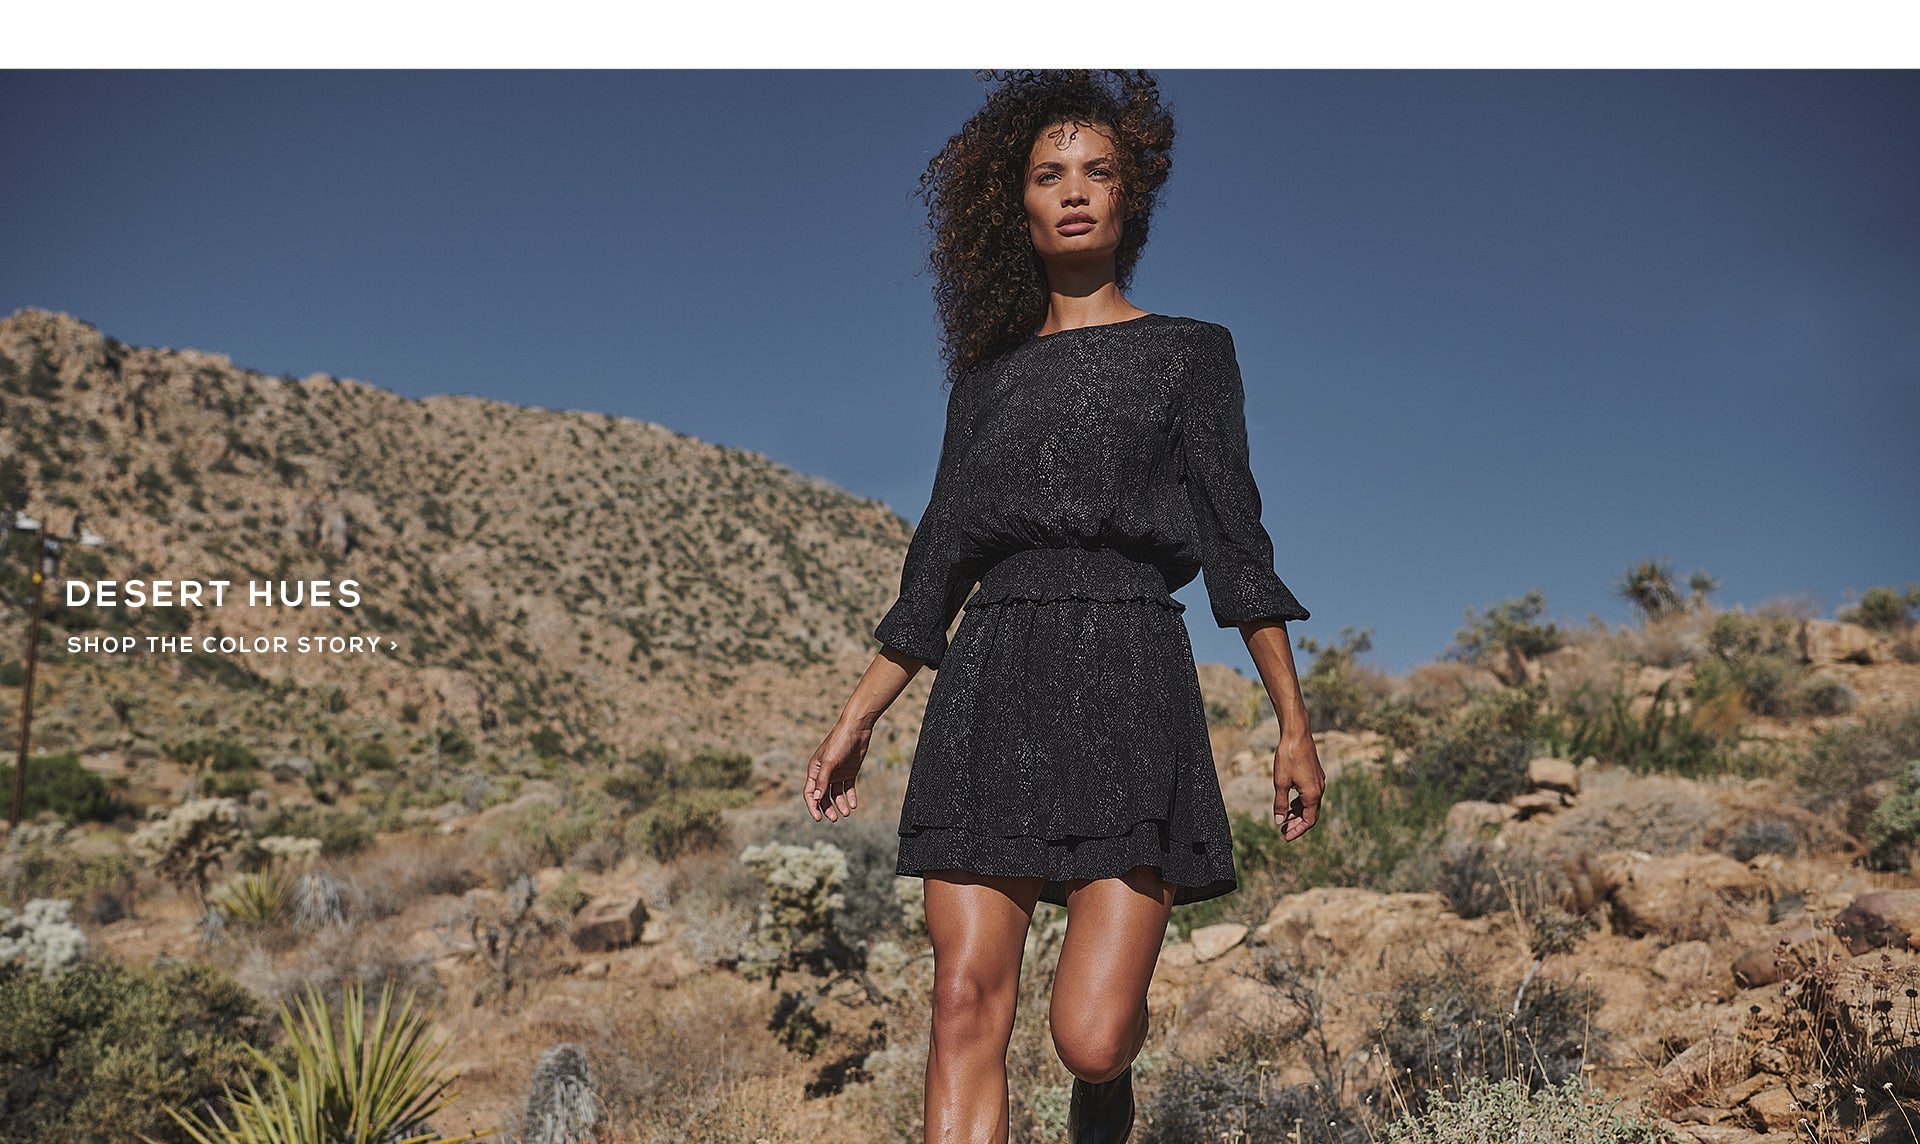 desert hues womens collection, tops, jackets, dresses, skirts